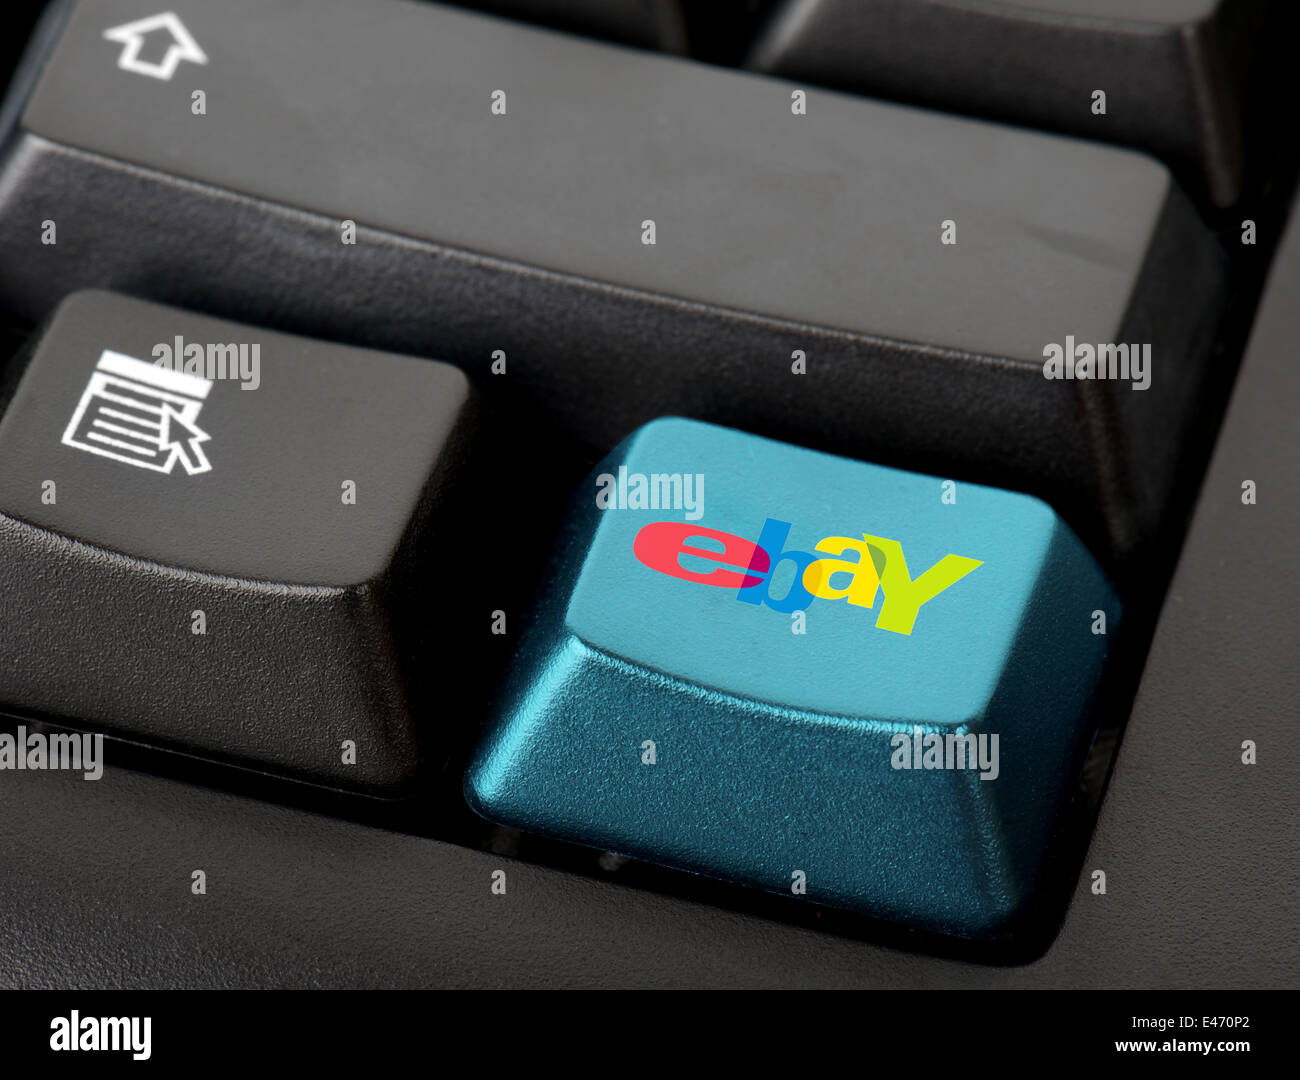 shropshire, uk . june 28th 2014. A button for ebay on the keyboard. Online shop. - Stock Image